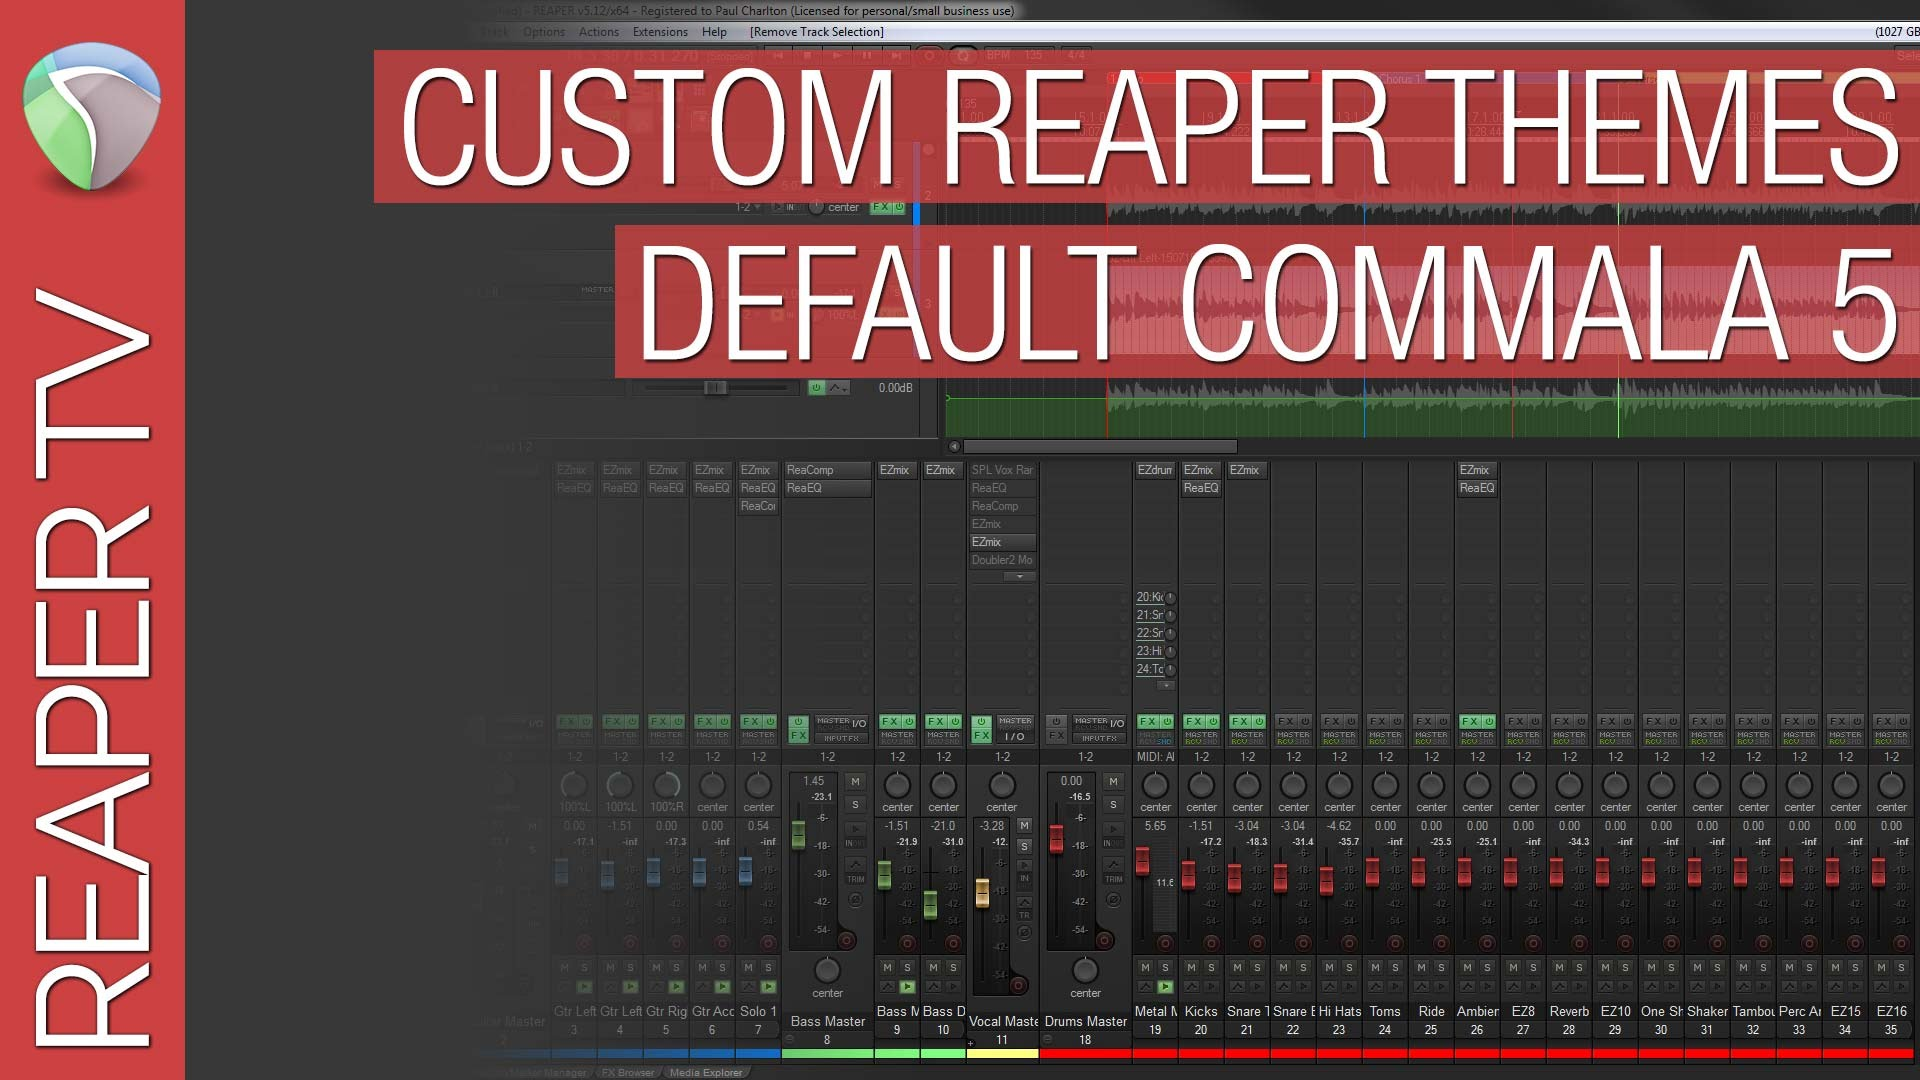 Reaper Themes for Beginners – Default Commala 5